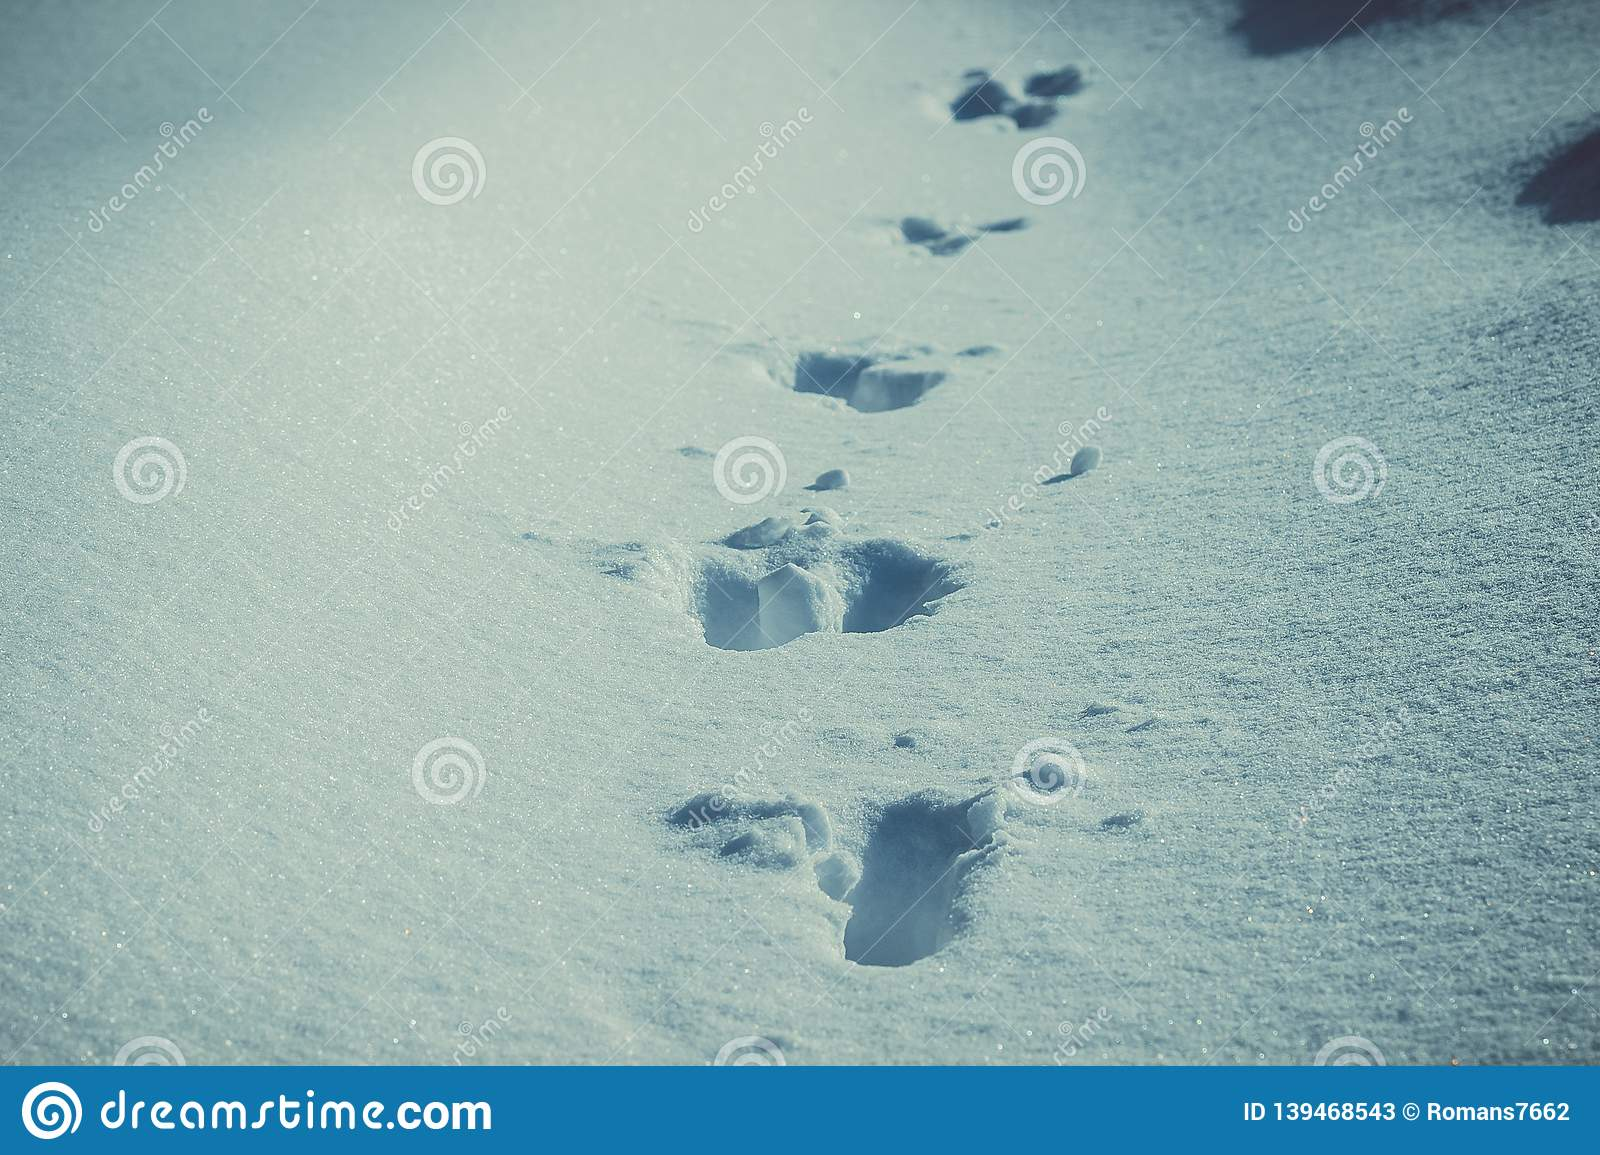 Traces of animals in the snow